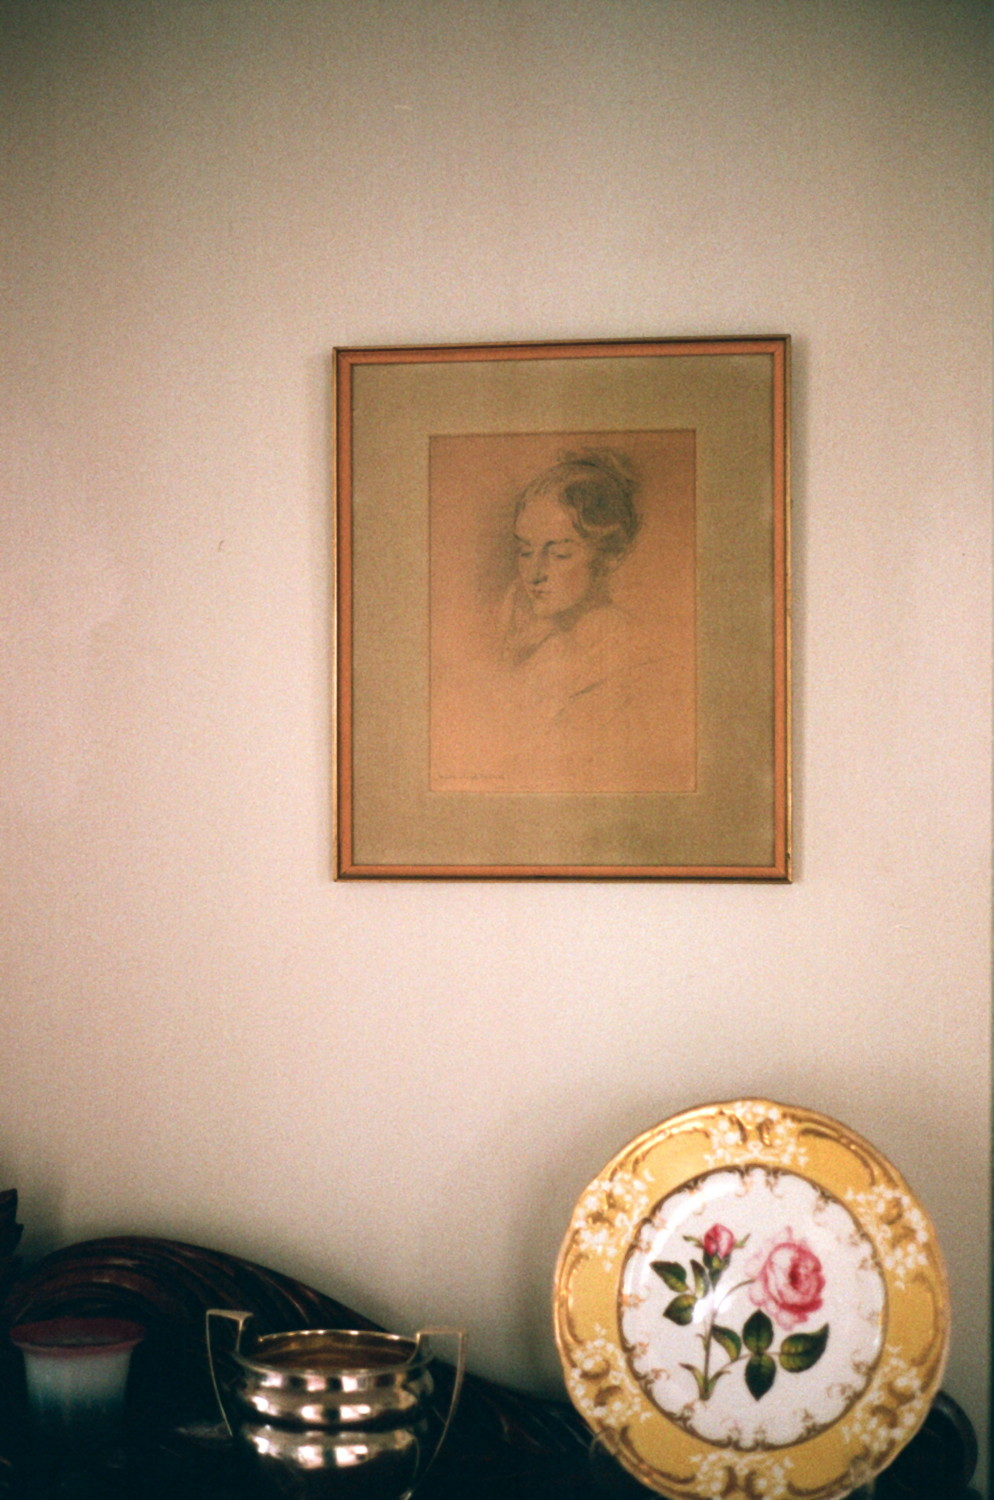 I2_Julia Tatham in the Hall at Wanda Nelson's house in Malvern, Melbourne, May 2012 1